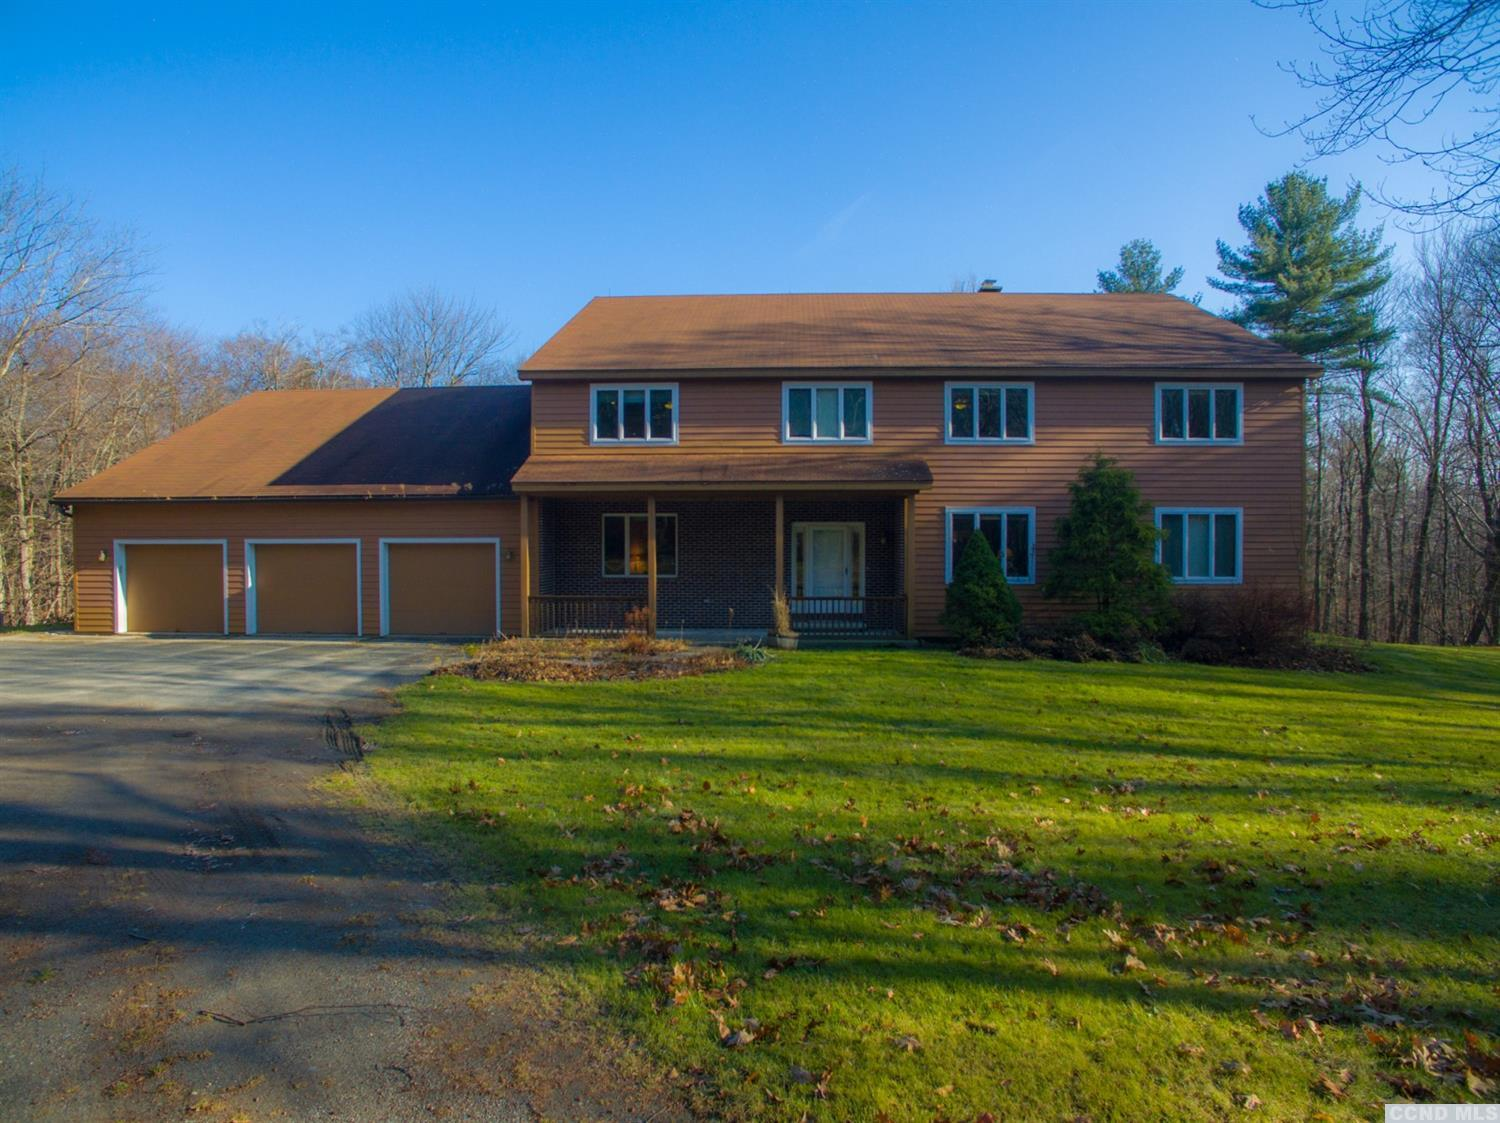 Bring family and friends to this 8 bed 7 bath getaway or permant home. Featuring 2 family rooms 2 master bedrooms (one on 1st floor). Privately located on 34 wooded acres. A short drive to ski areas, Thruway, Taconic Parkway.<br>Easy drive to Tanglewood, Stockbridge and Hudson.  <br>Over 6,500 sqft of Geo-Thermally heated space.